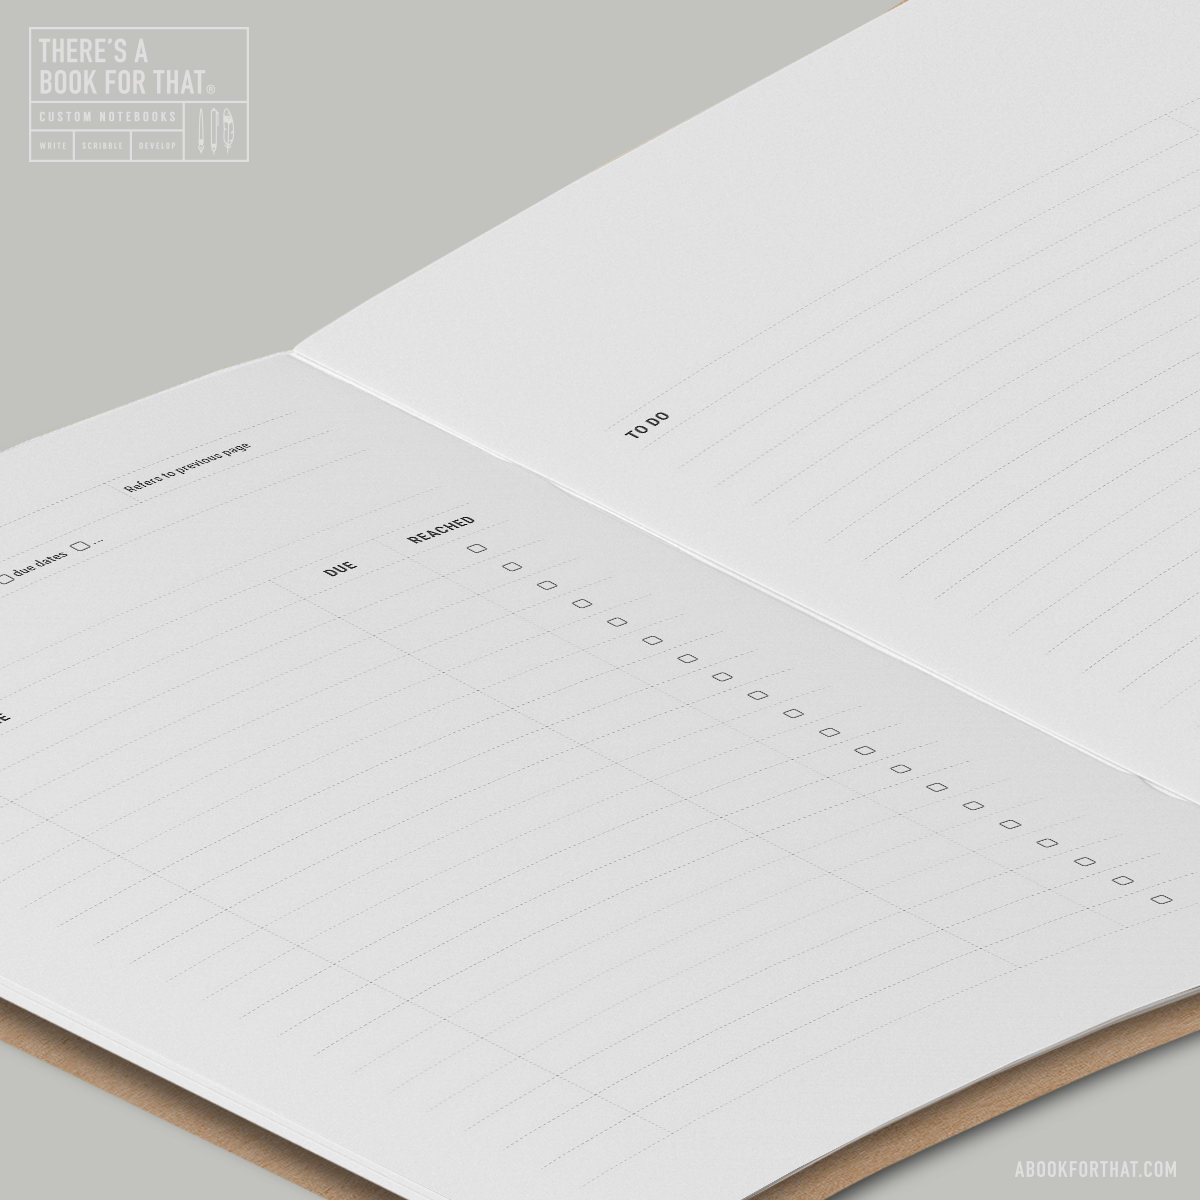 B-118_Projectmanagement_Stationery_Notebook_Details2